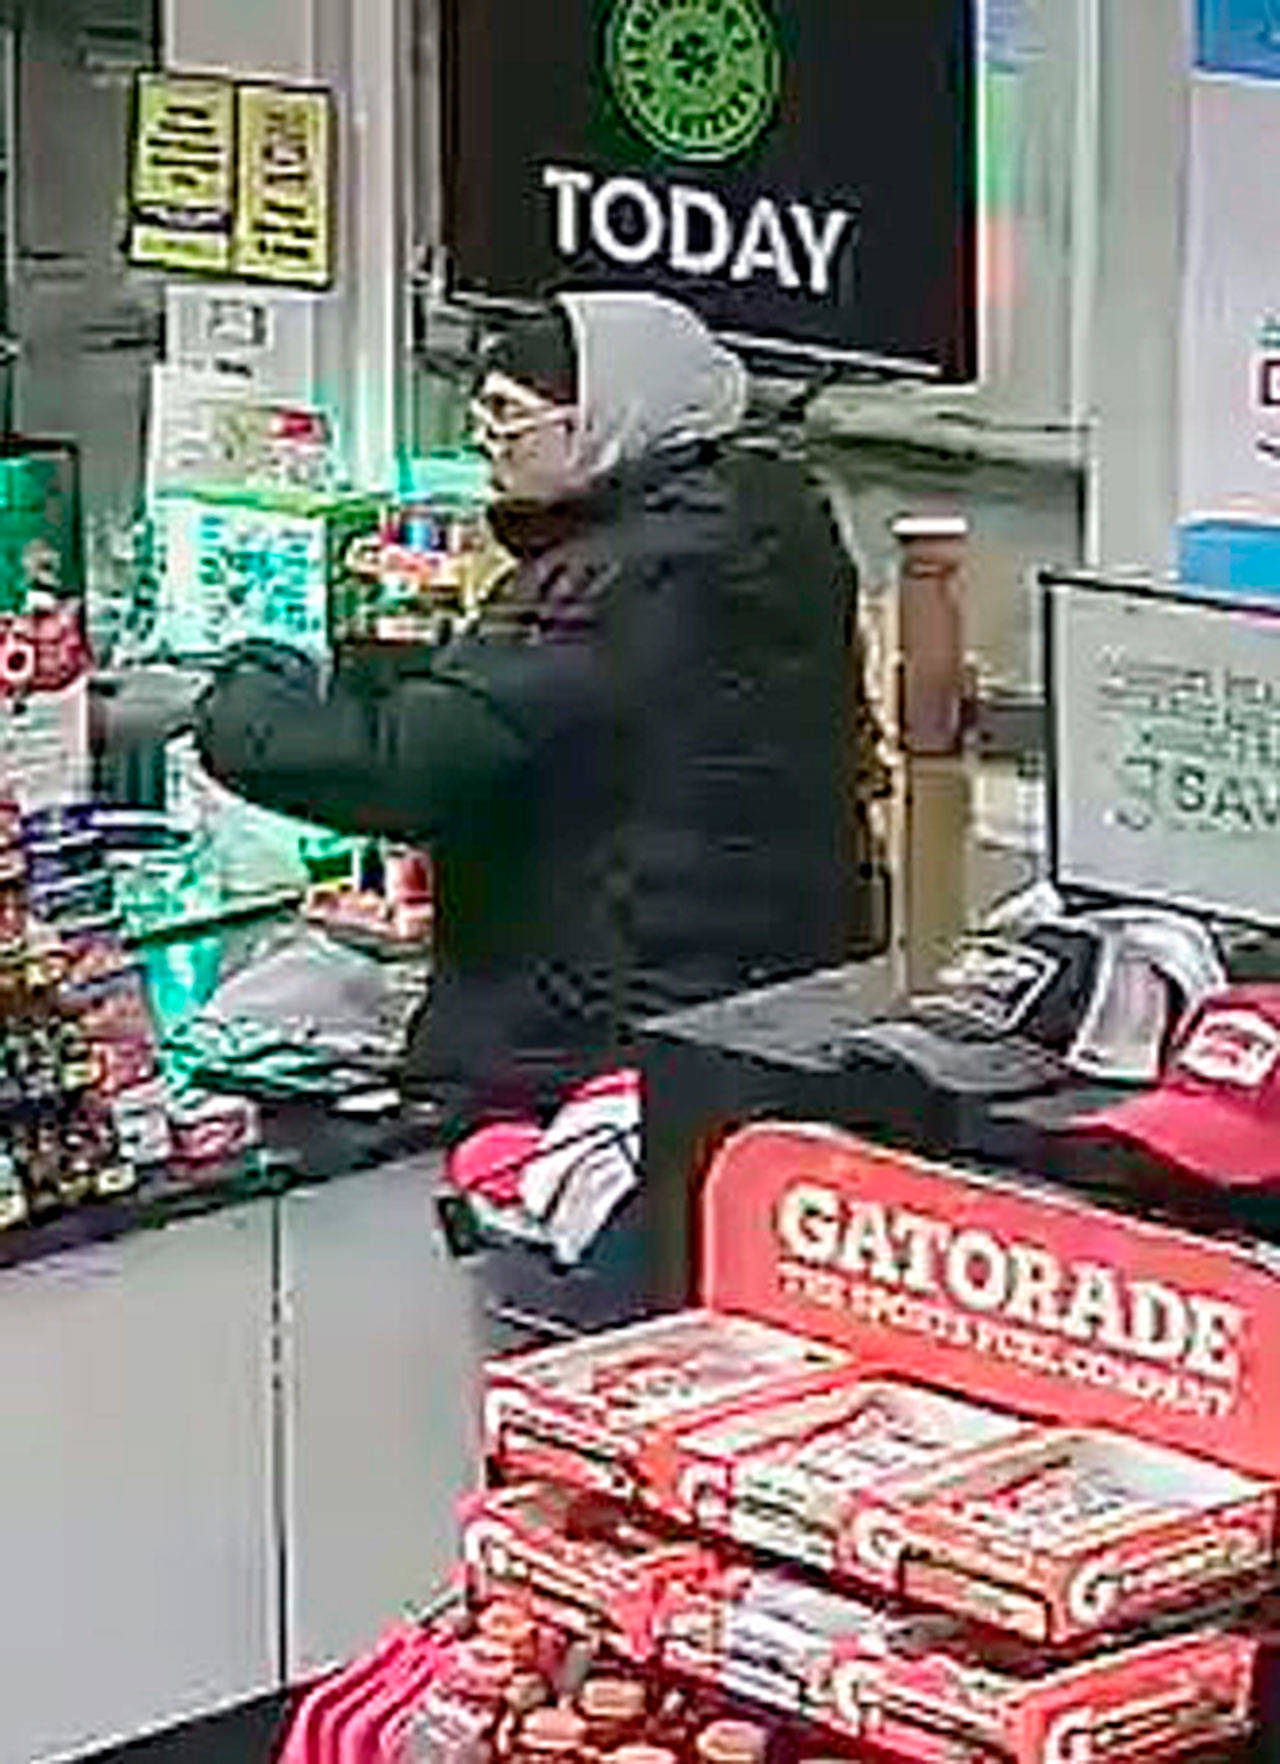 He wore glasses with translucent yellow stripes, a black beanie, light-colored gloves and a gray sweatshirt under a puffy black coat. (Courtesy of the Island County Sheriff's Office)